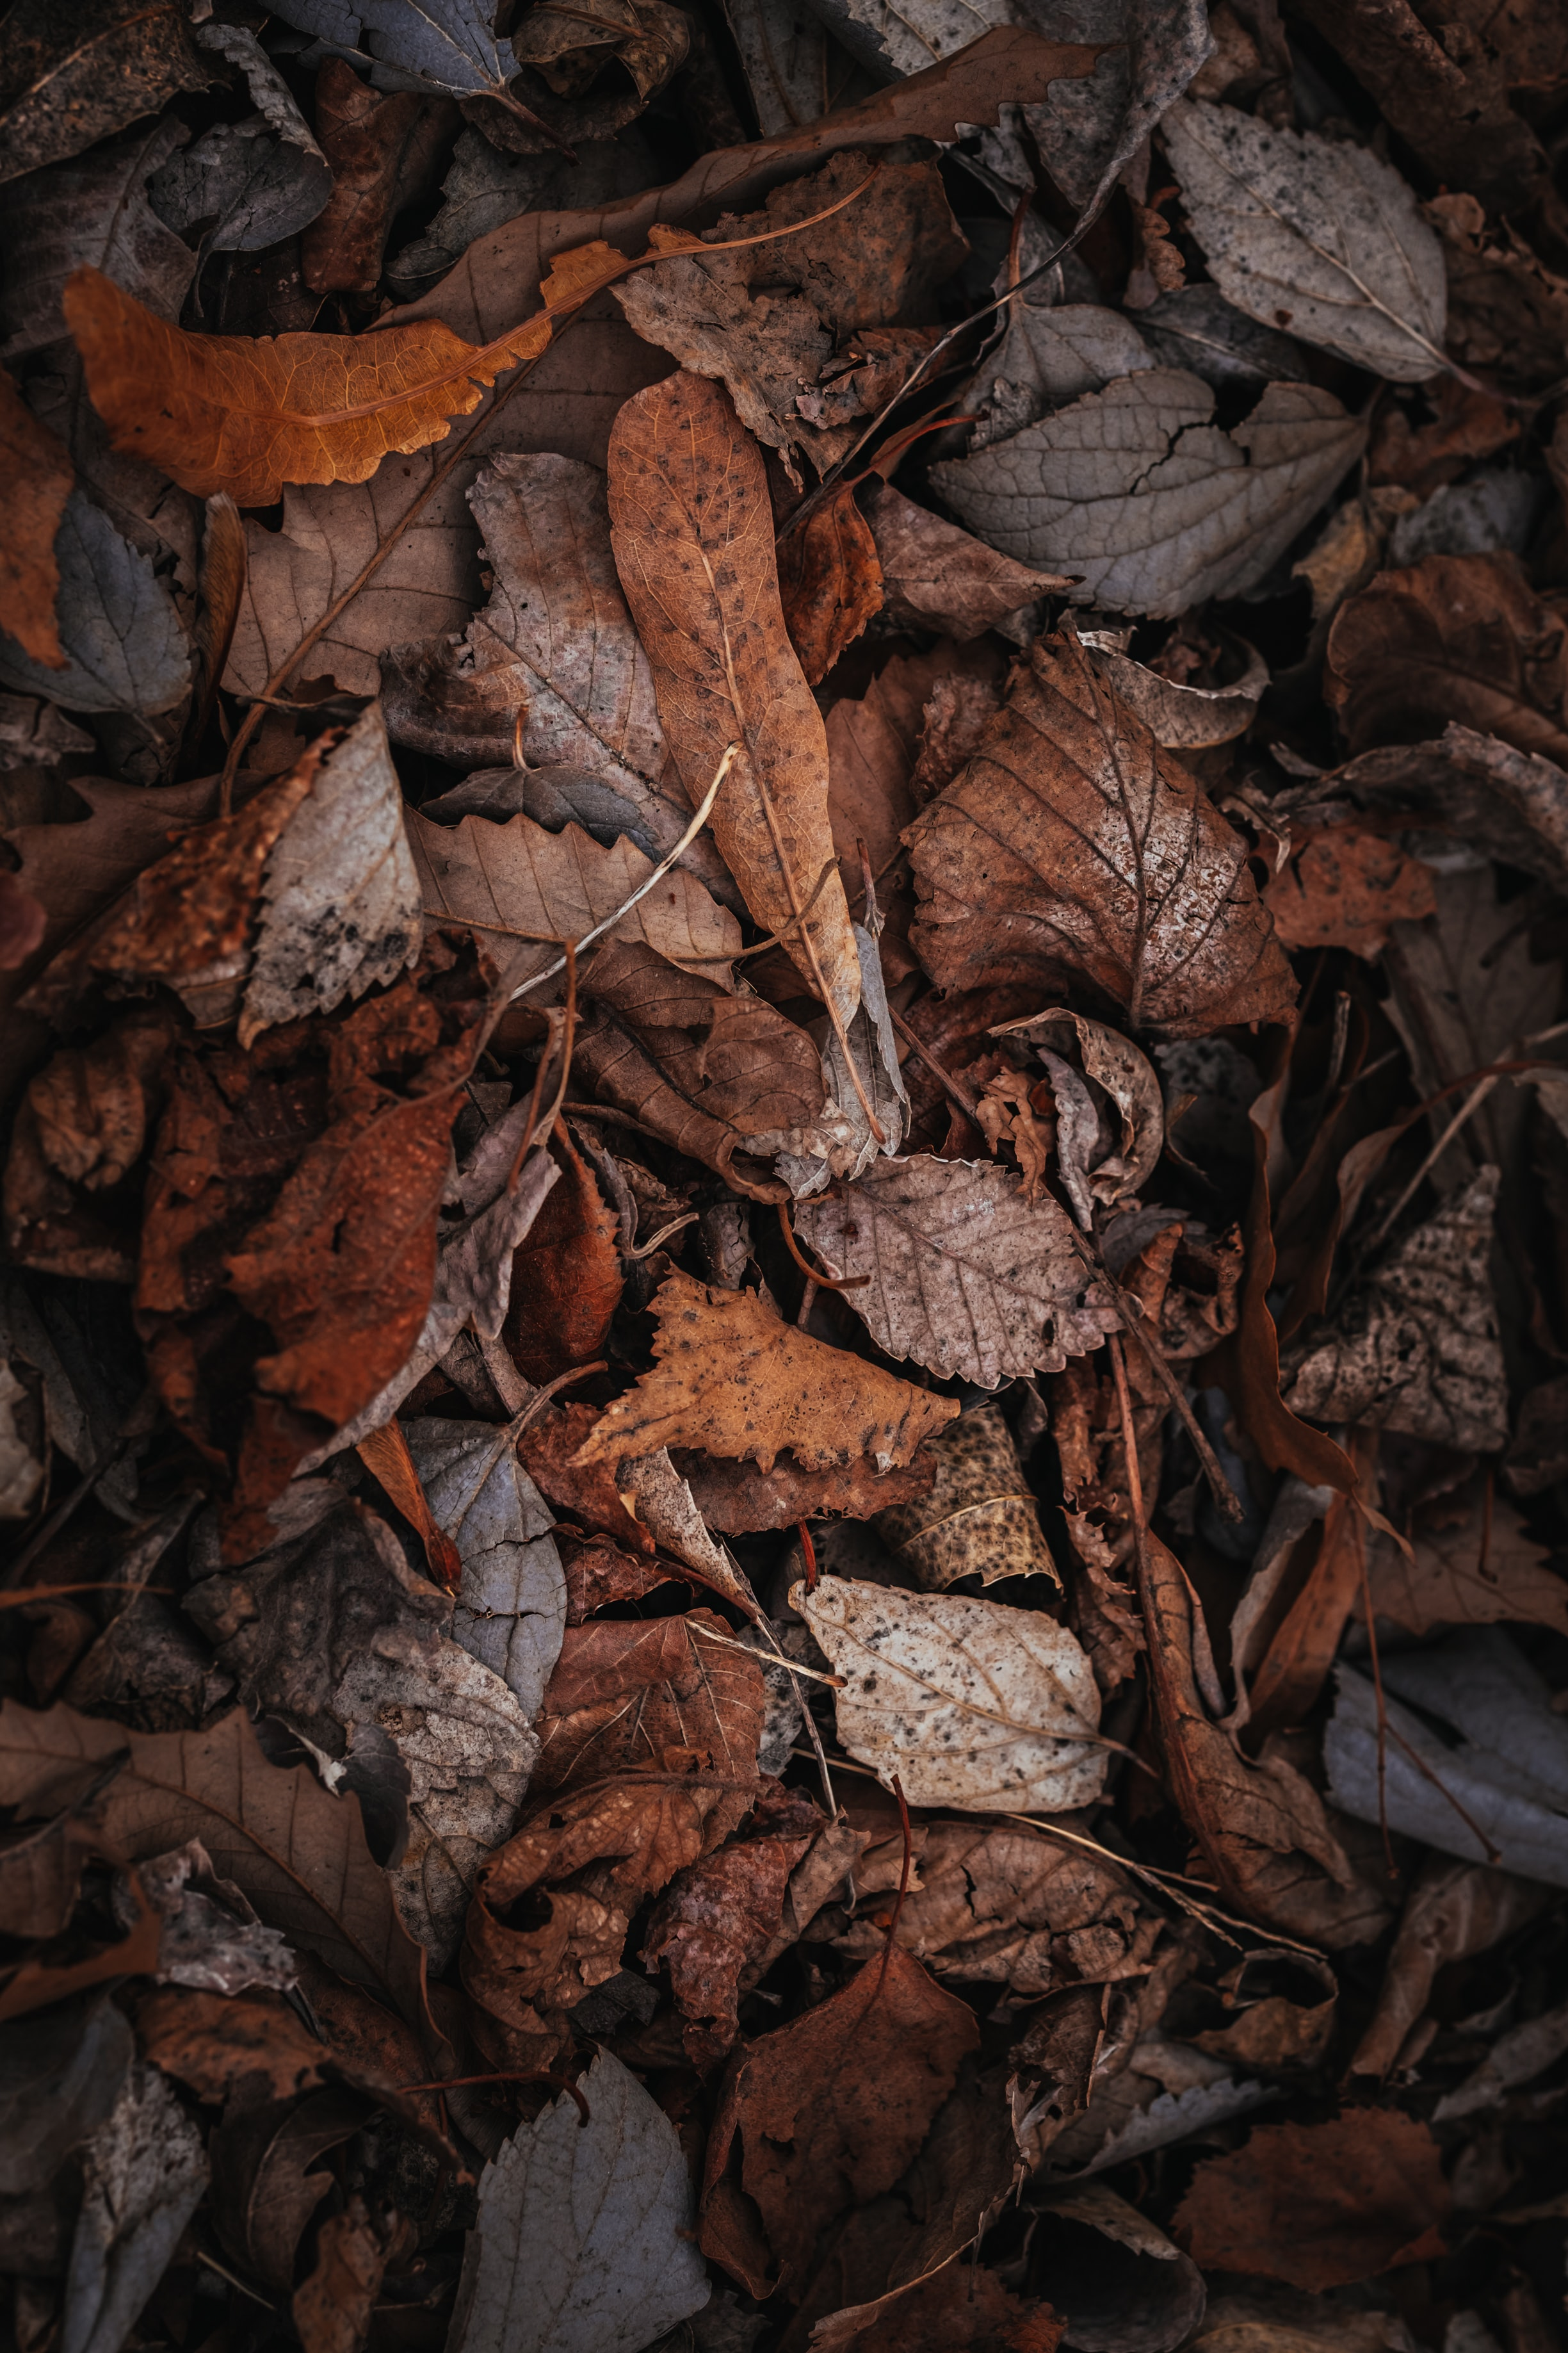 118739 download wallpaper Nature, Foliage, Dry, Autumn screensavers and pictures for free